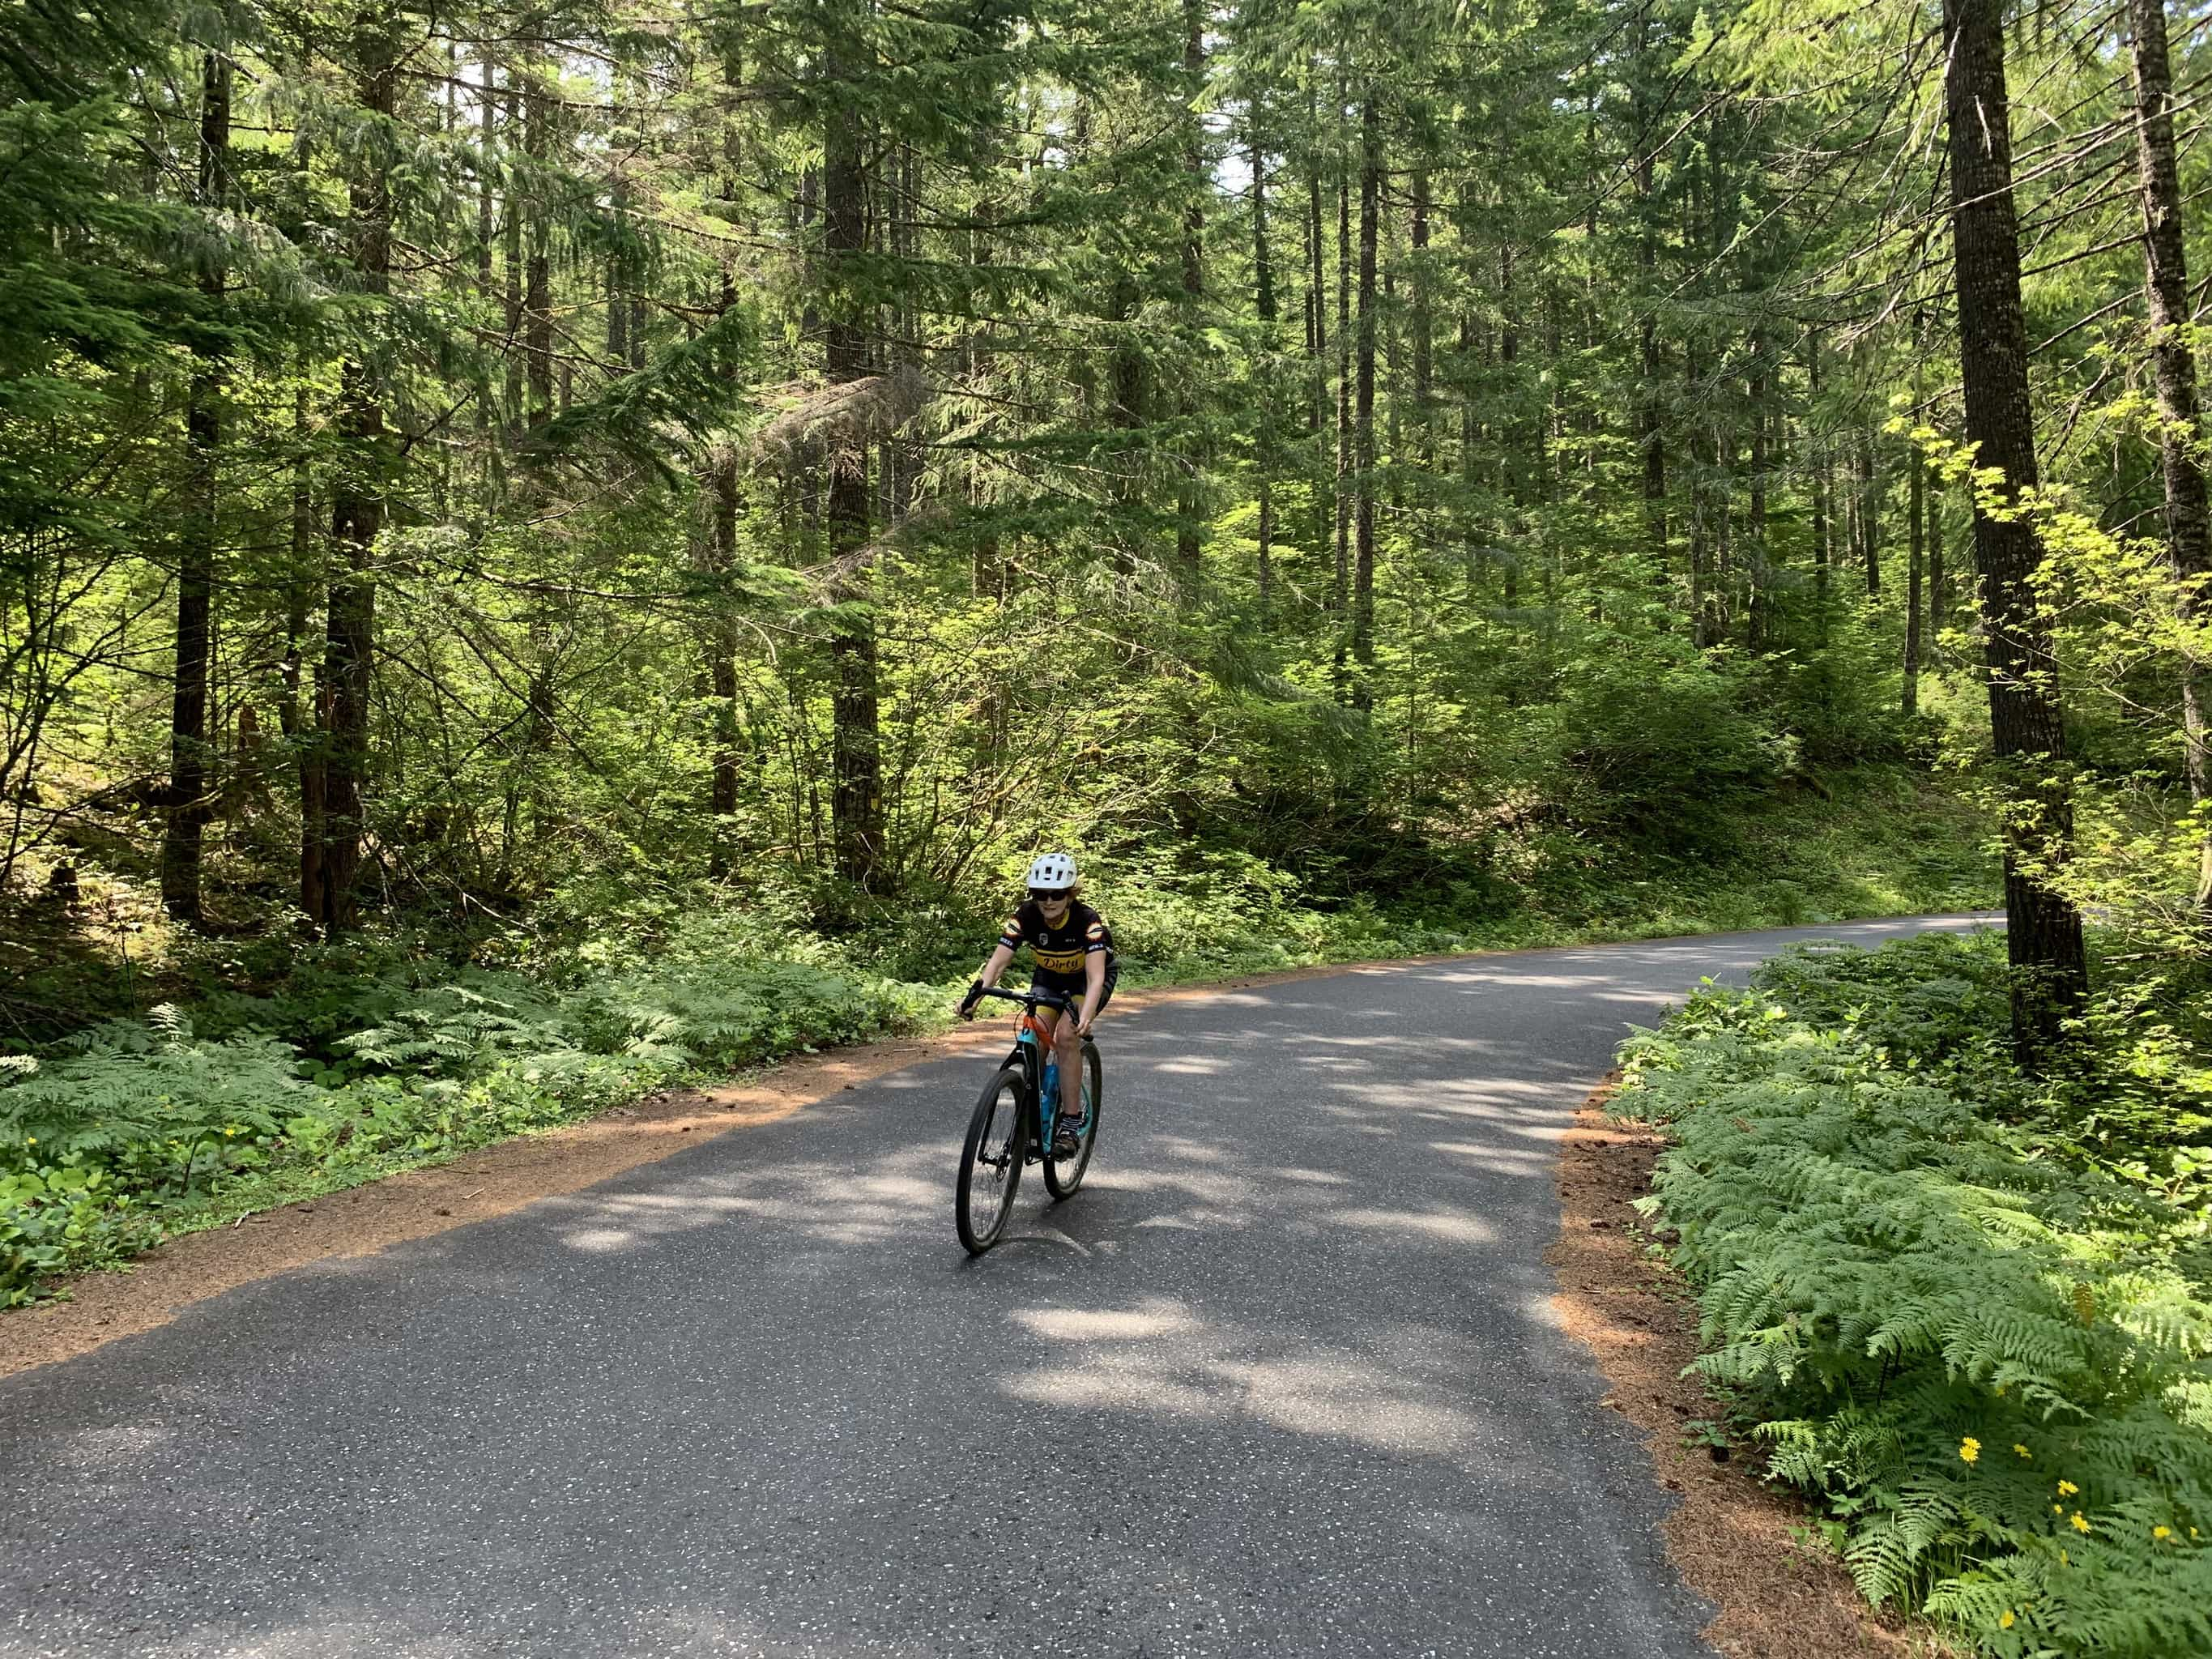 Cyclist on paved portion of NF-54 near the intersection with NF-34 near Stabler, Washington.